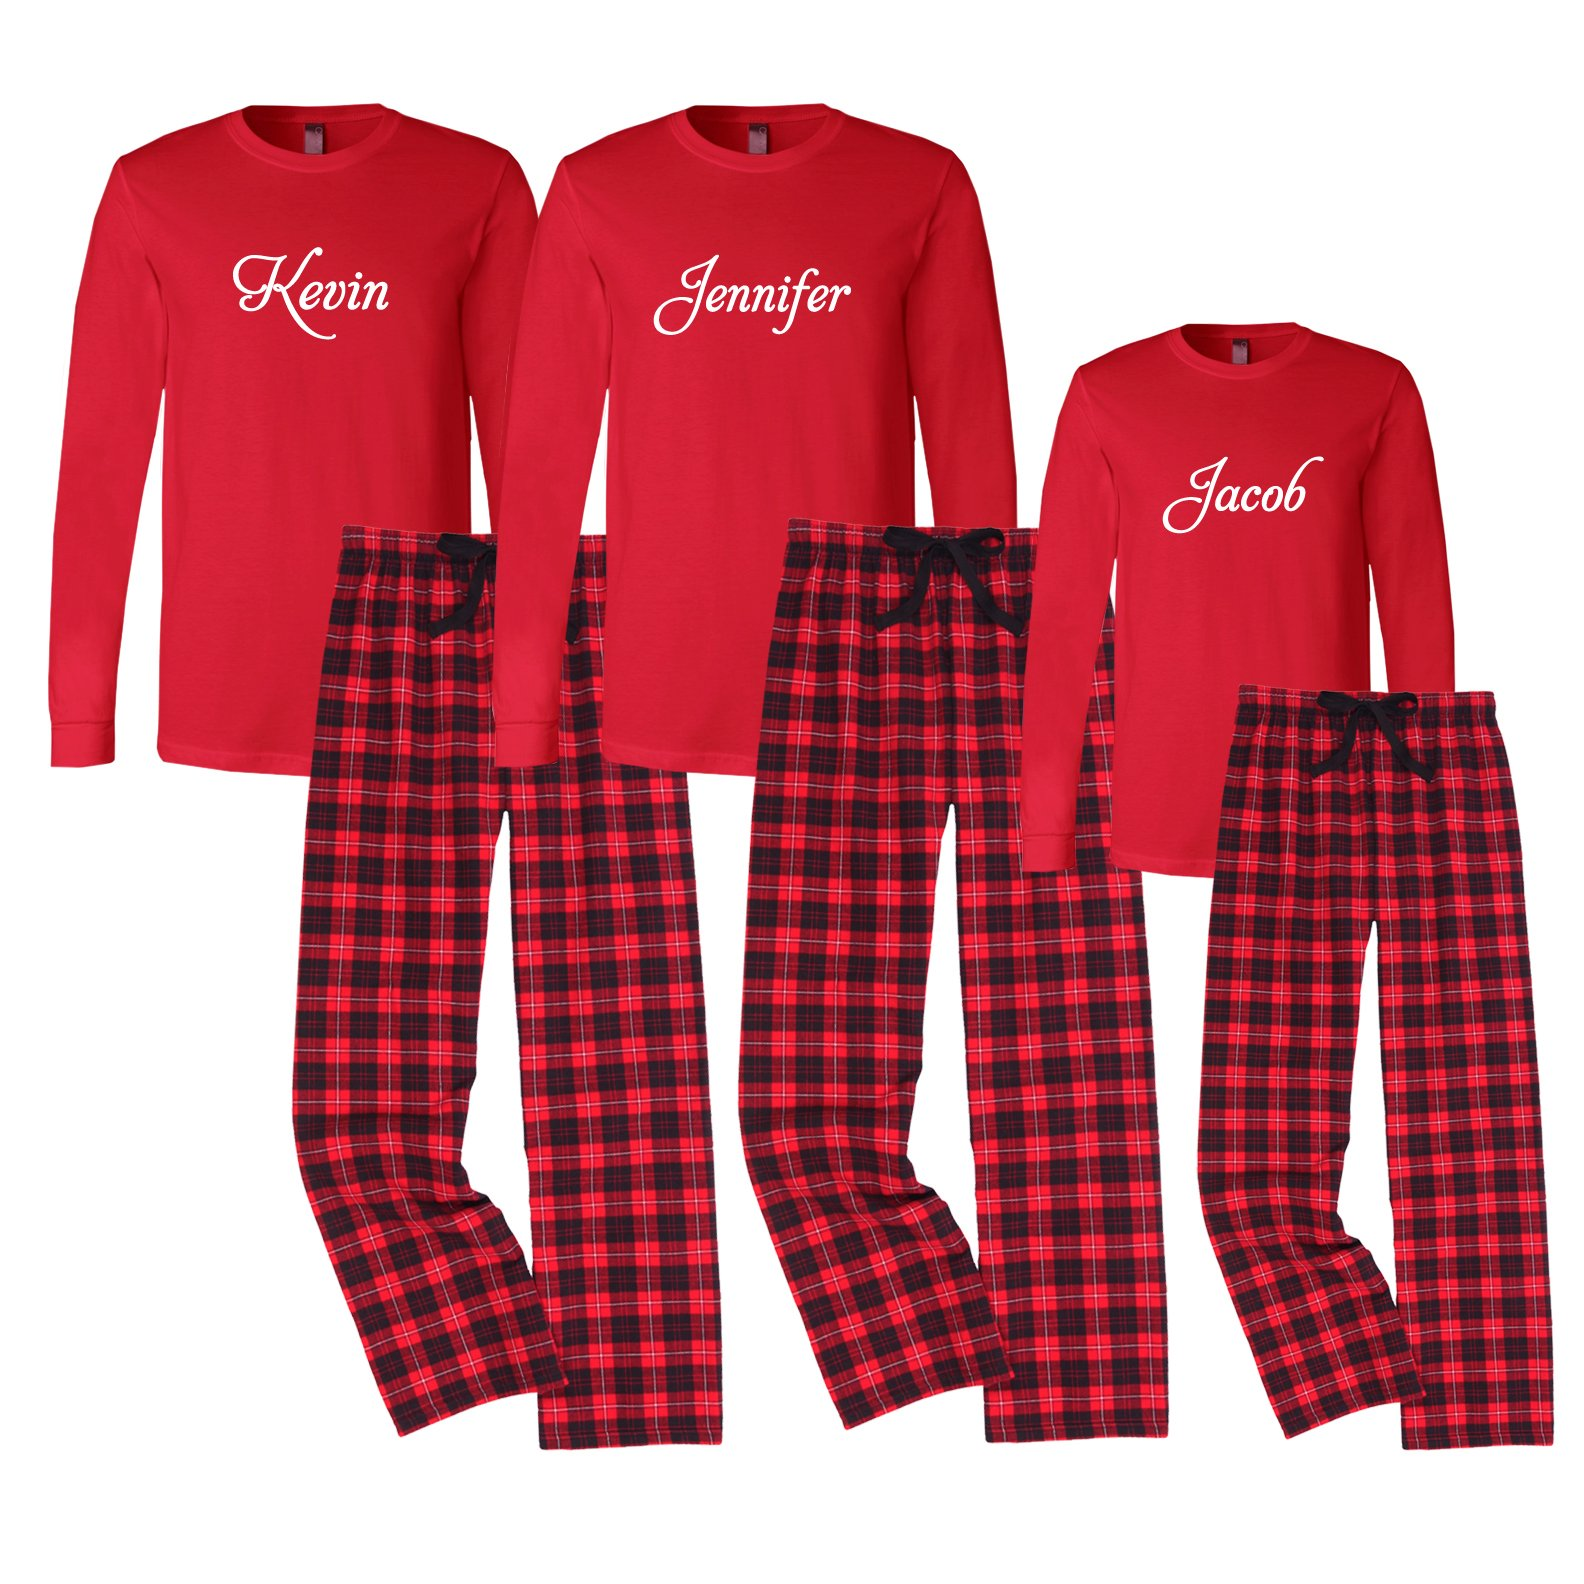 Set of 3 Personalized Family Christmas Pajamas - Black and Red (Set of 3) by Cotton Sisters